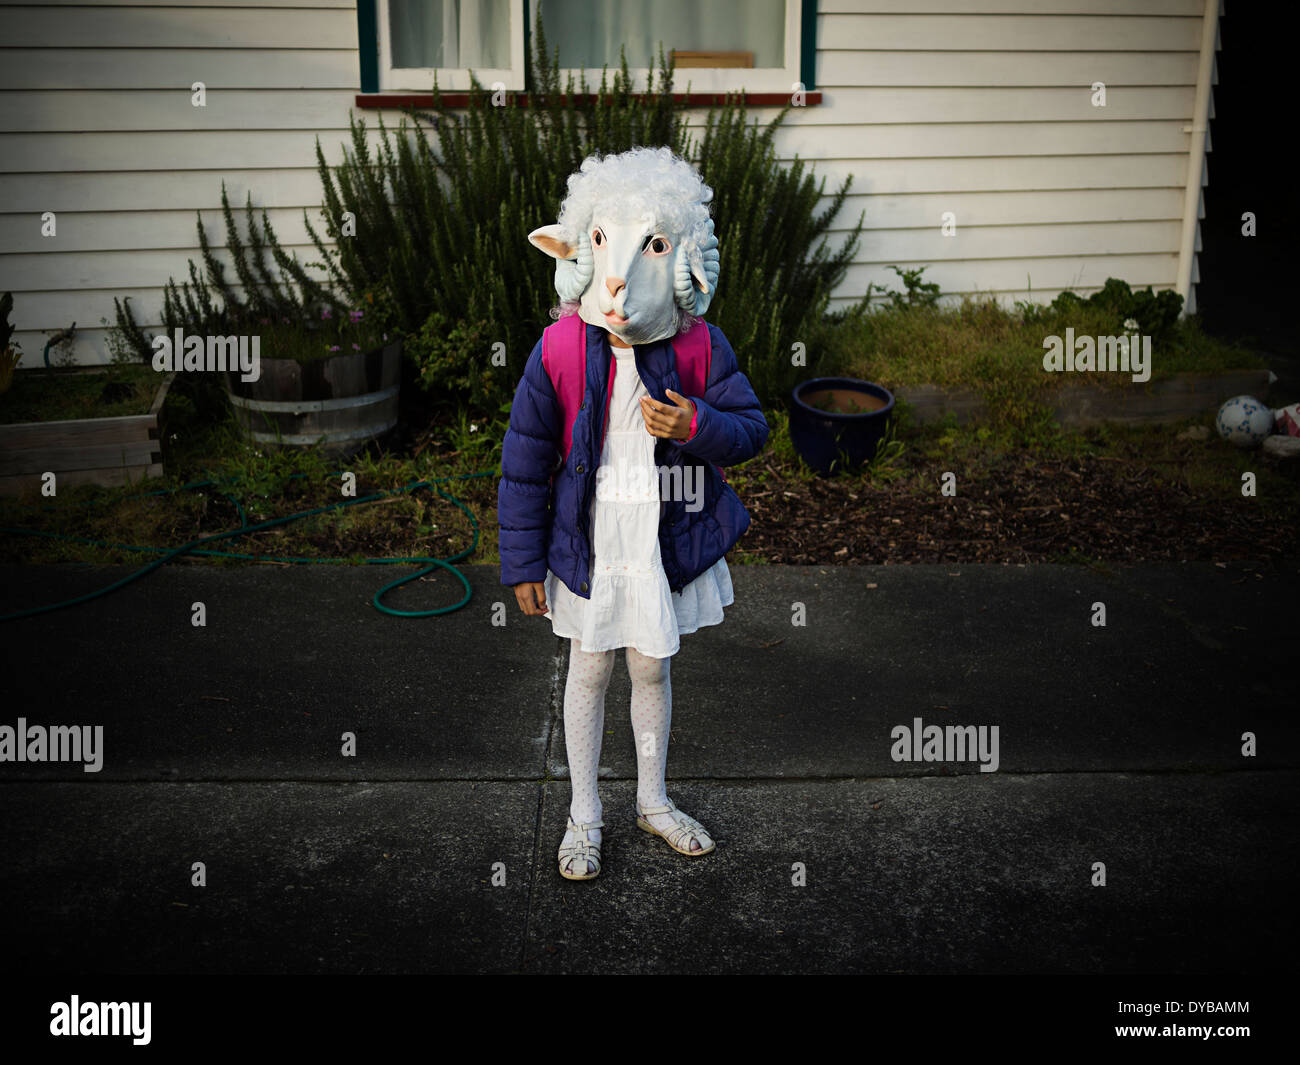 Dress up day at school: girl sets off on walk to school dressed as a sheep - Stock Image